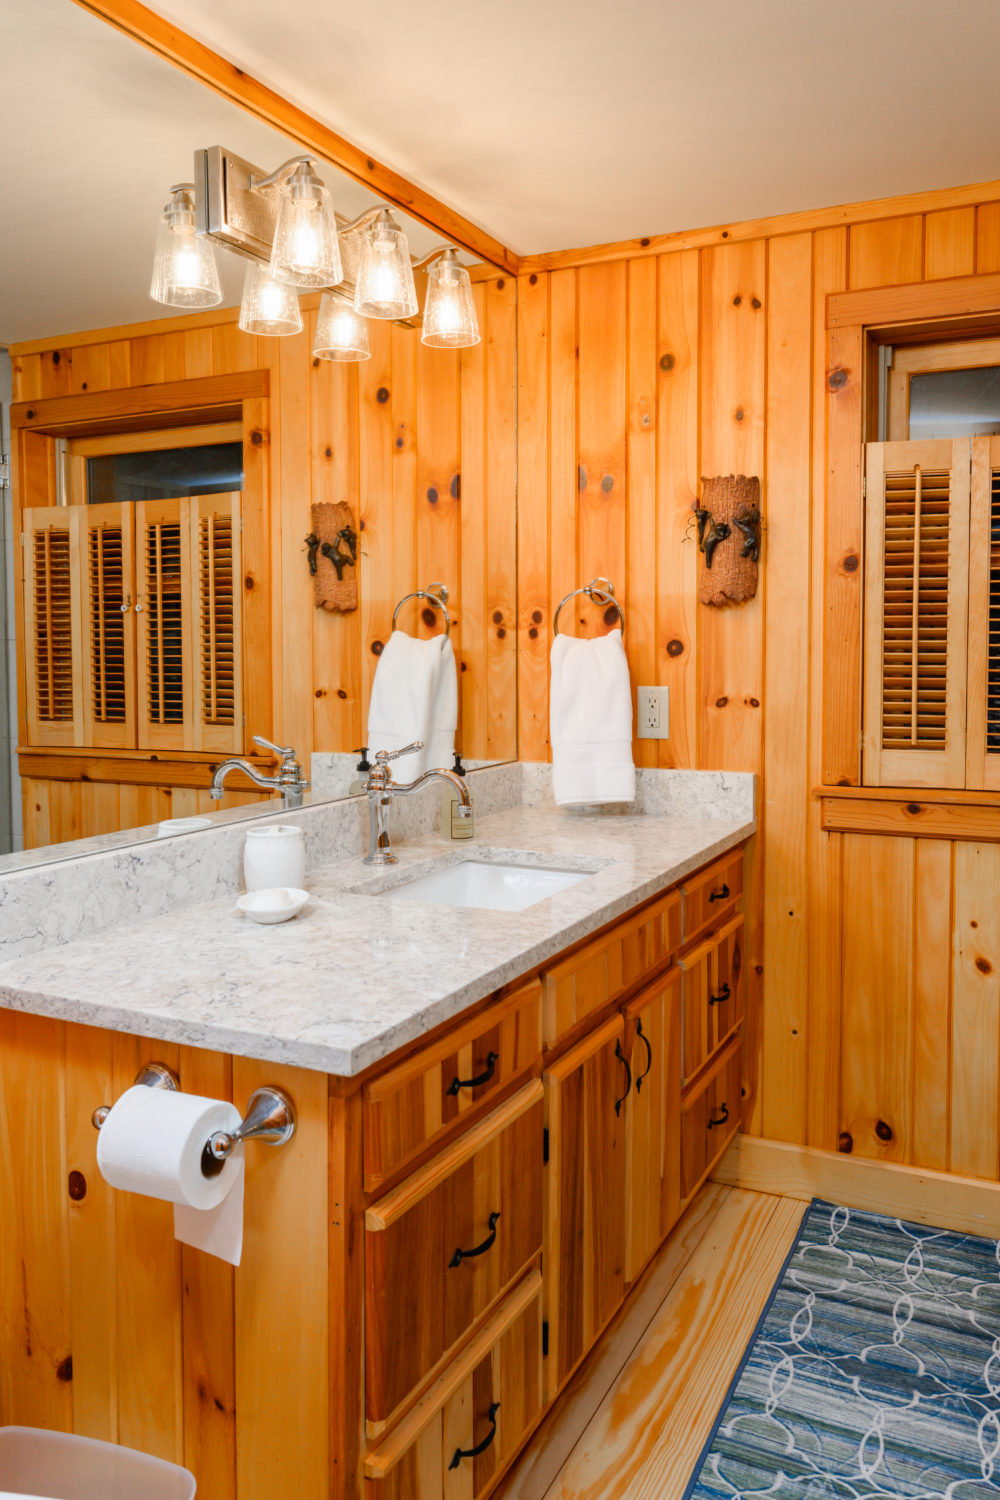 Pine wood paneling creates a rustic feel for this renovated bathroom in the cozy cabin update